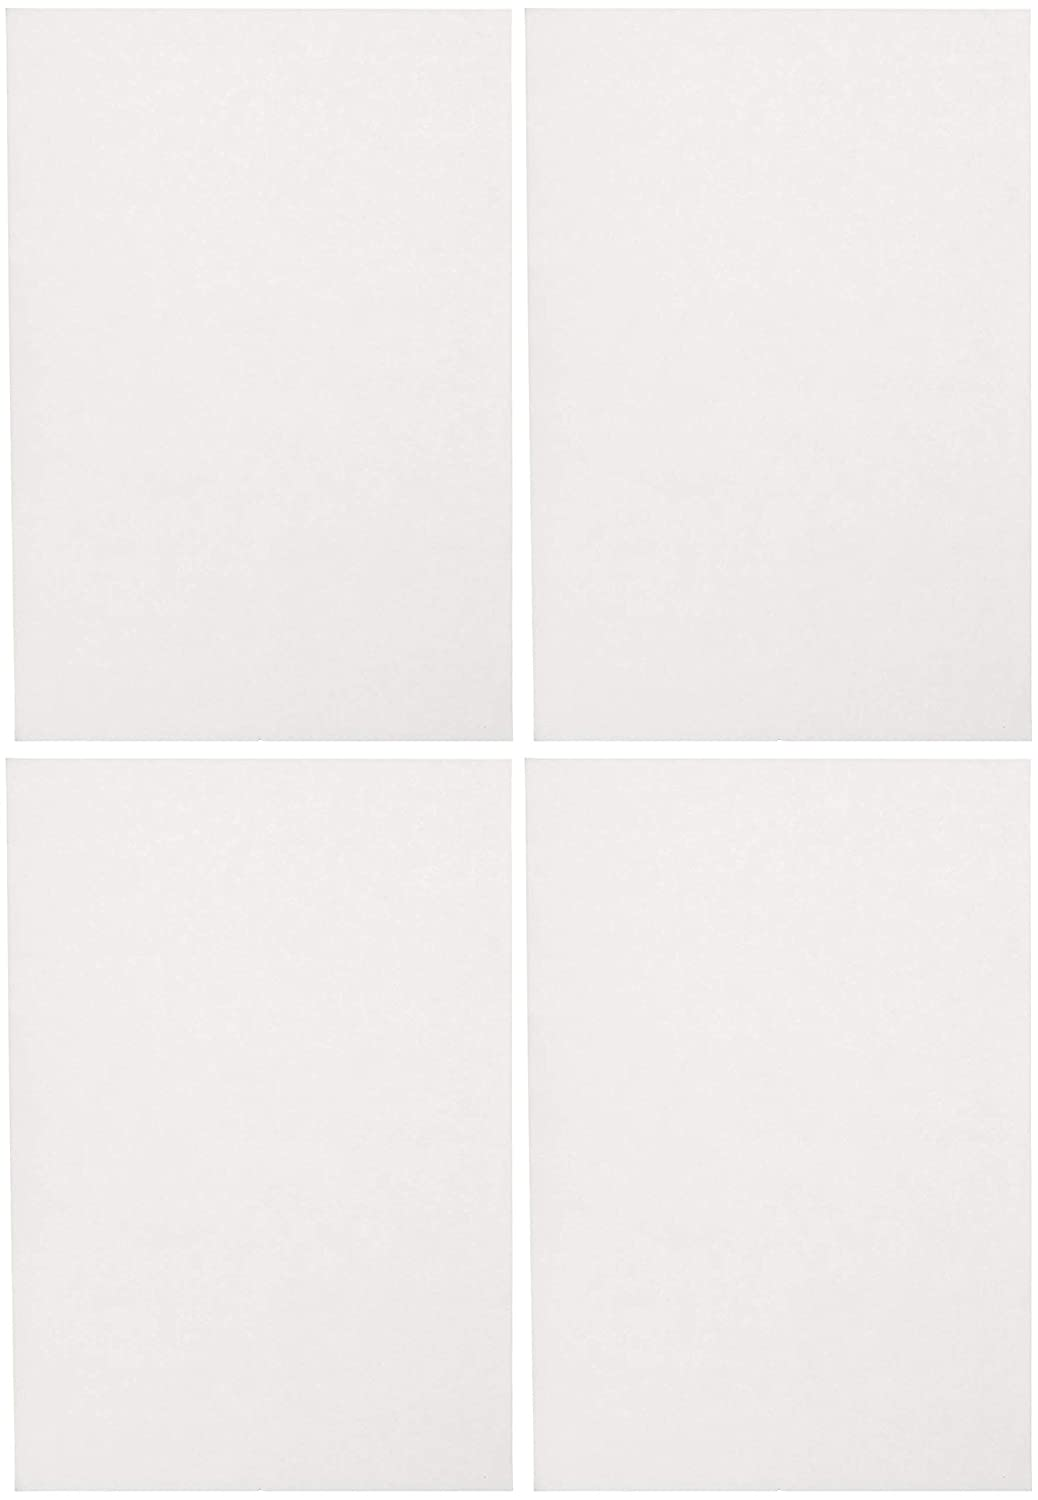 Sax Sulphite Drawing Paper Extra-White 70 lb Pack of 500 12 x 18 Inches